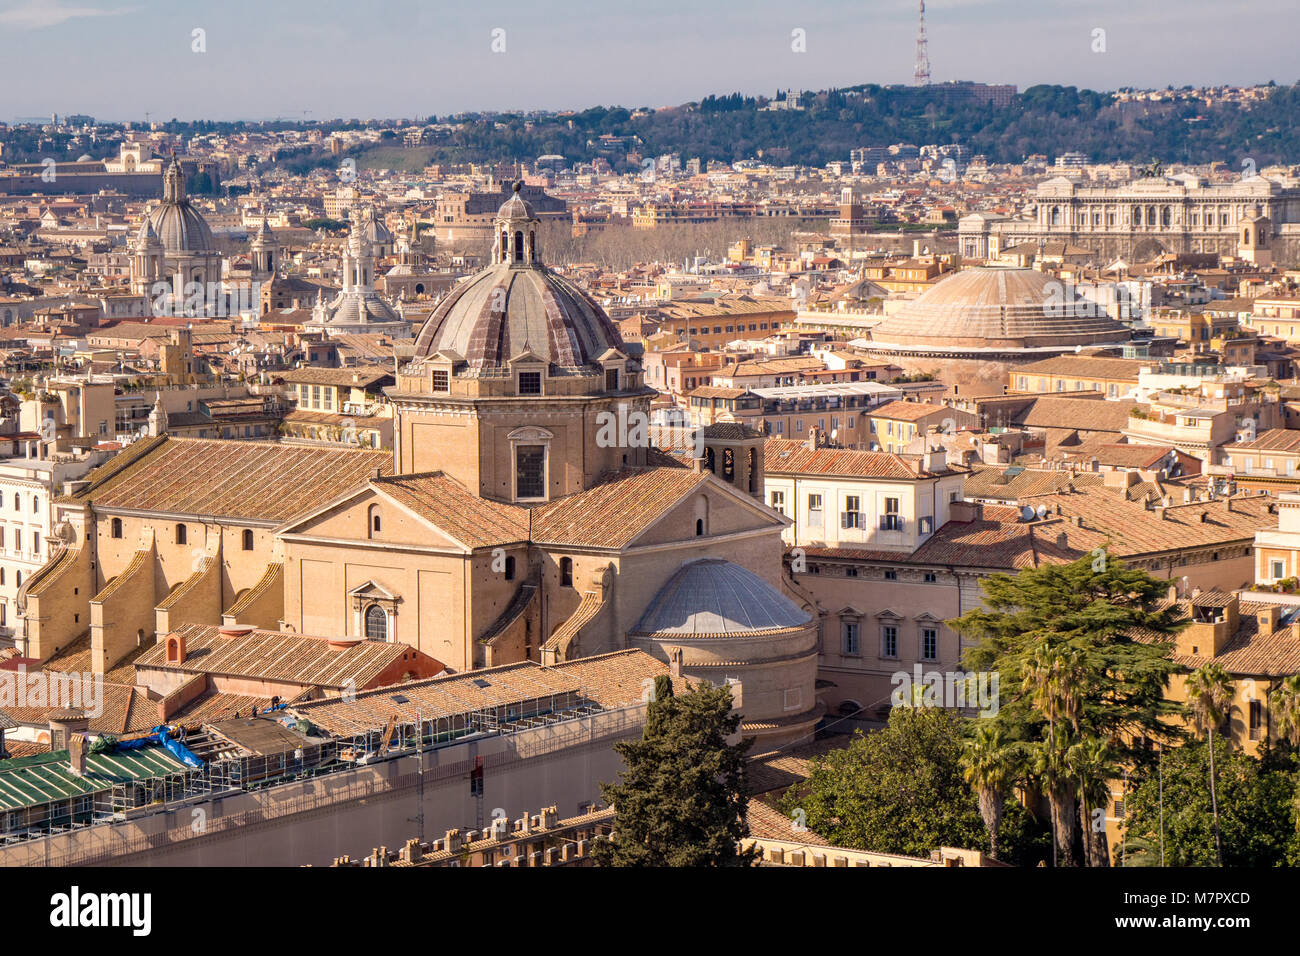 Rome skyline with the Pantheon visible - Stock Image